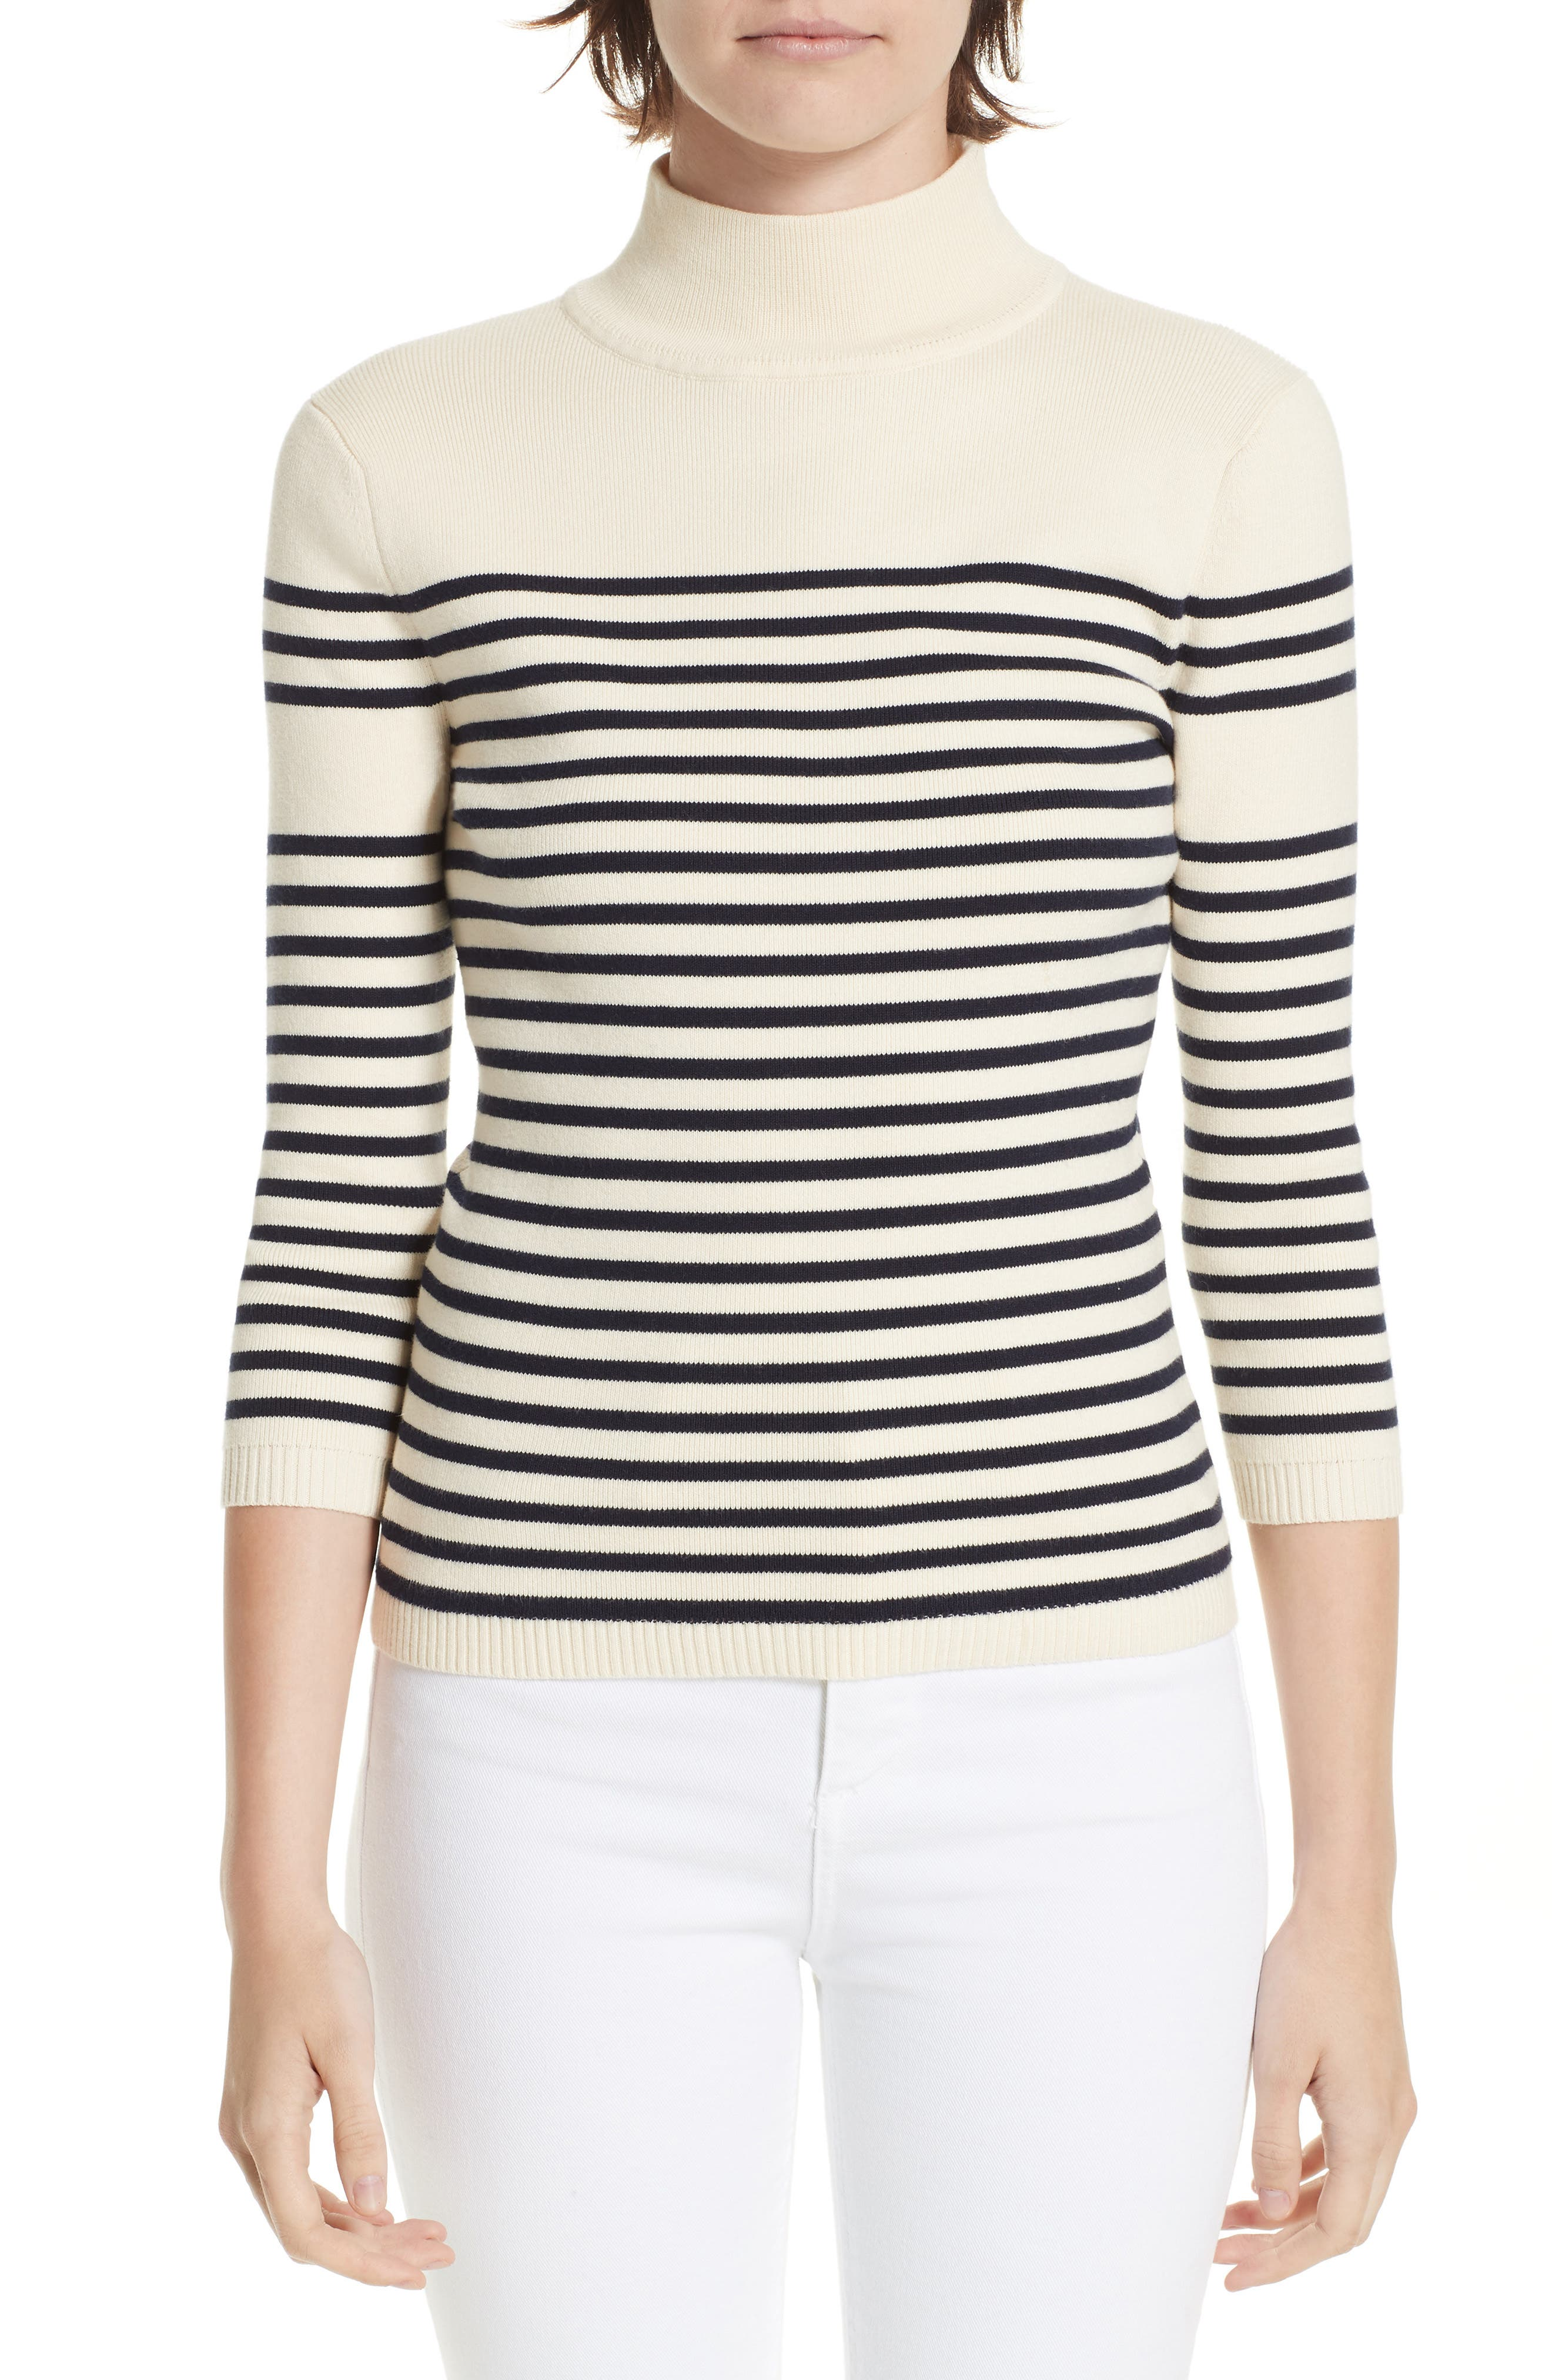 Classique Stripe Sweater,                         Main,                         color, CREAM/ NAVY STRIPES